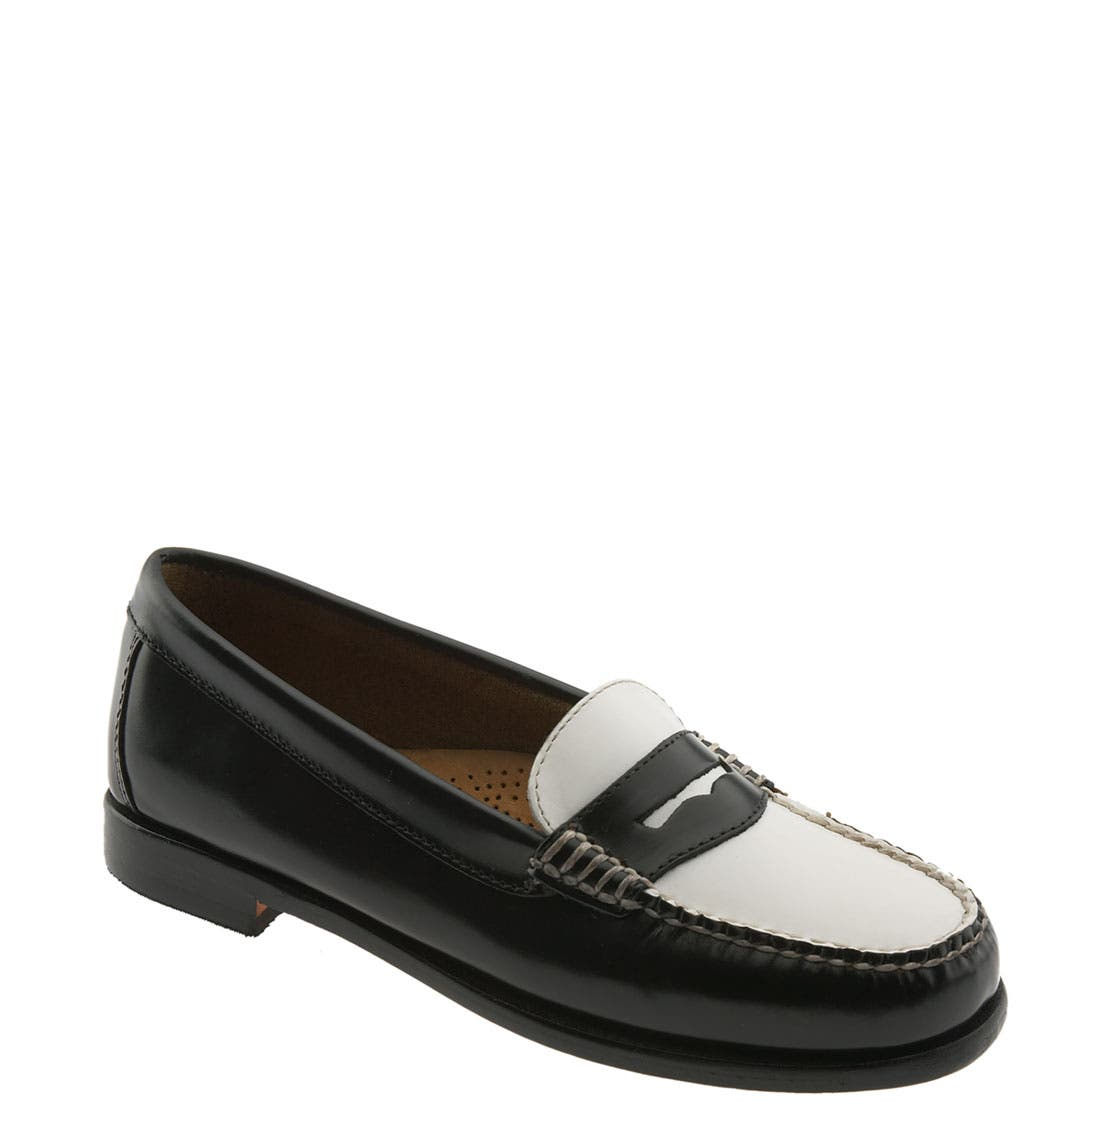 Alternate Image 1 Selected - G.H. Bass & Co. 'Wayfarer' Loafer (Women)